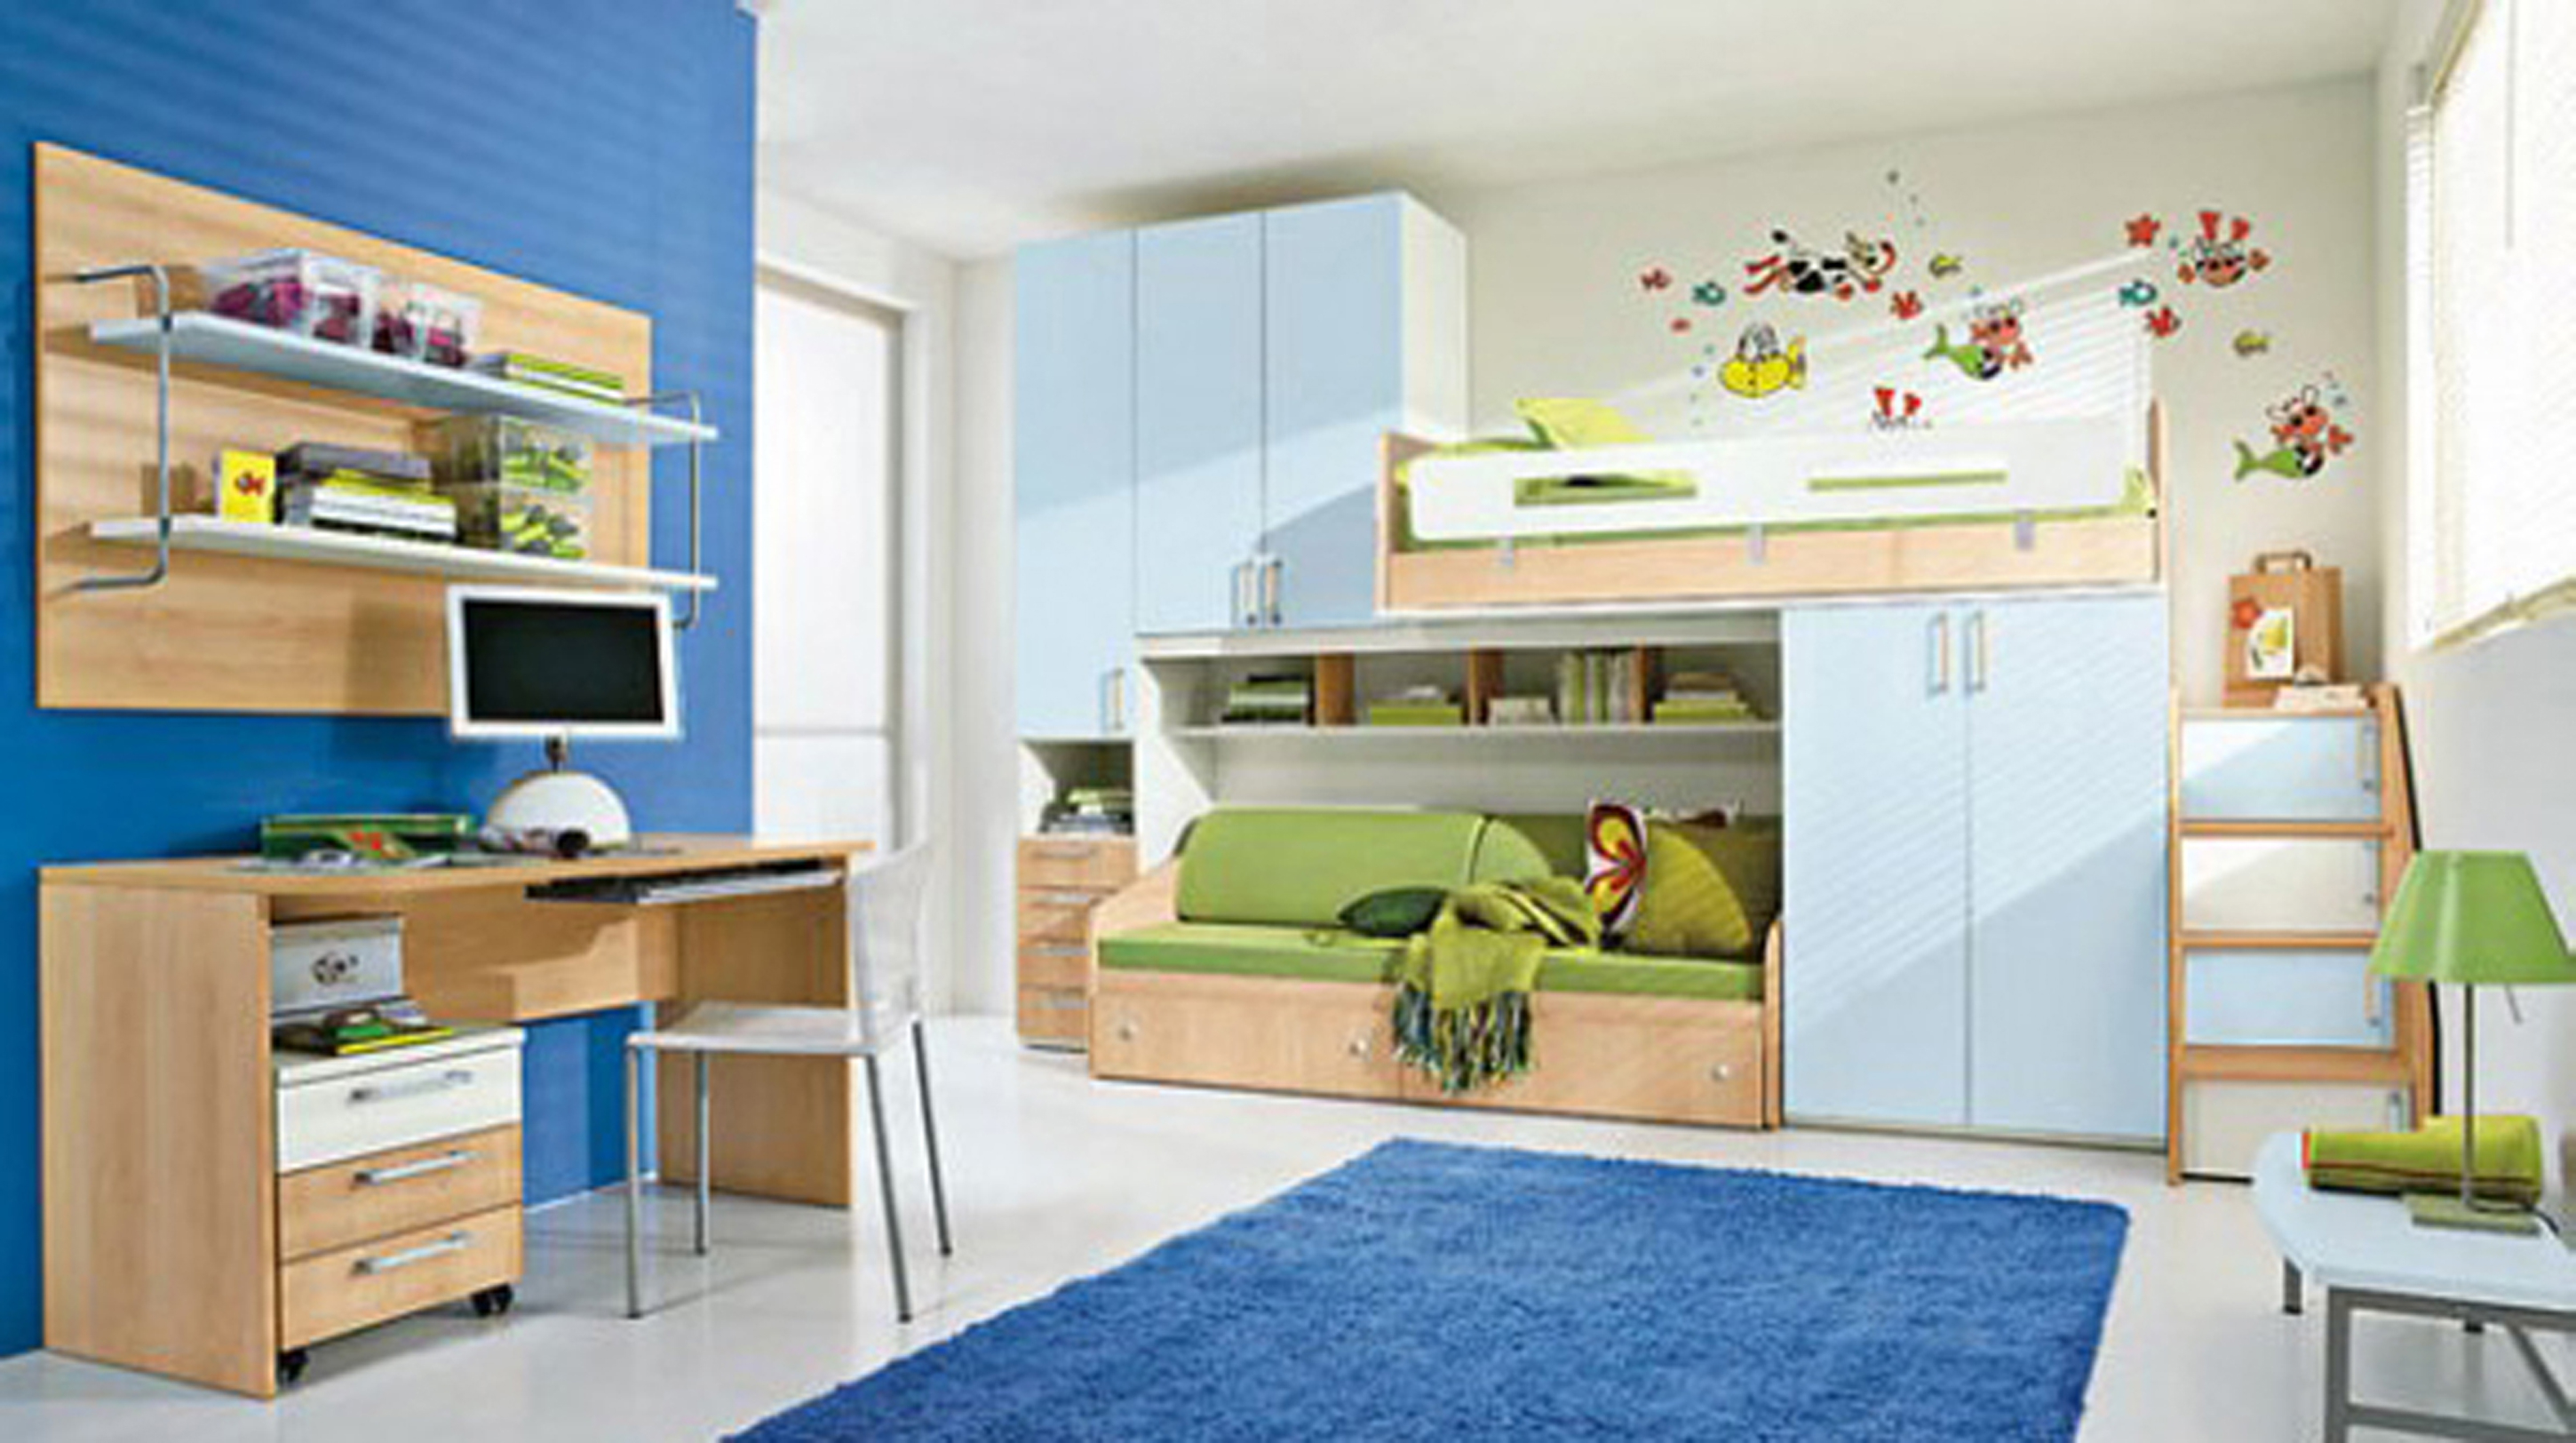 Cool kids room decorating ideas custom home design for Cool kids rooms decorating ideas